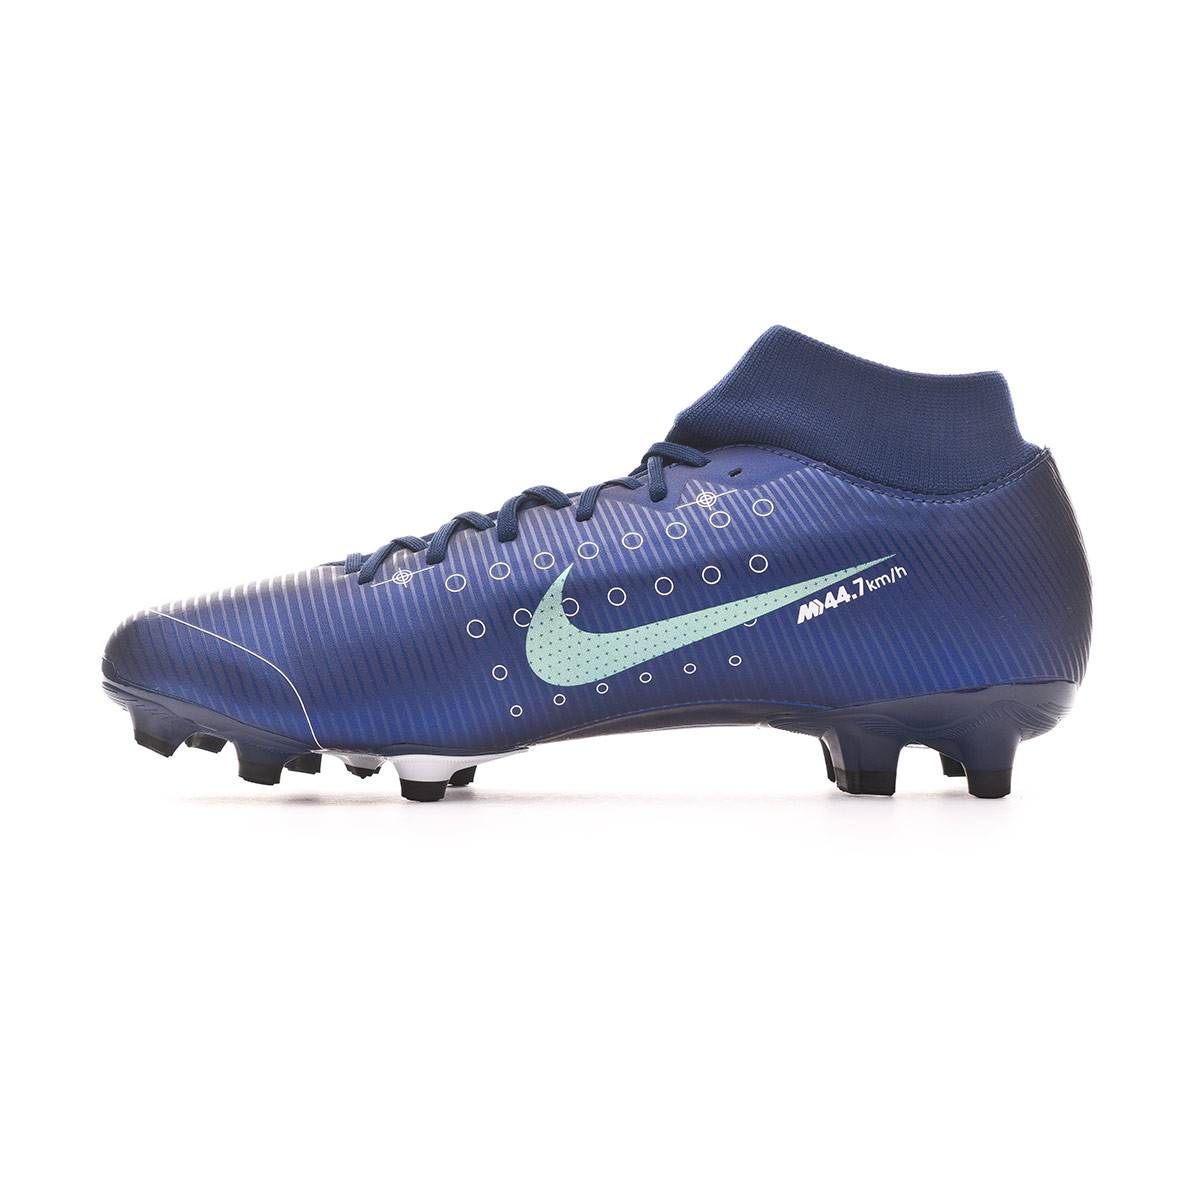 Chaussure de foot Nike Mercurial Superfly VII Academy MDS FGMG